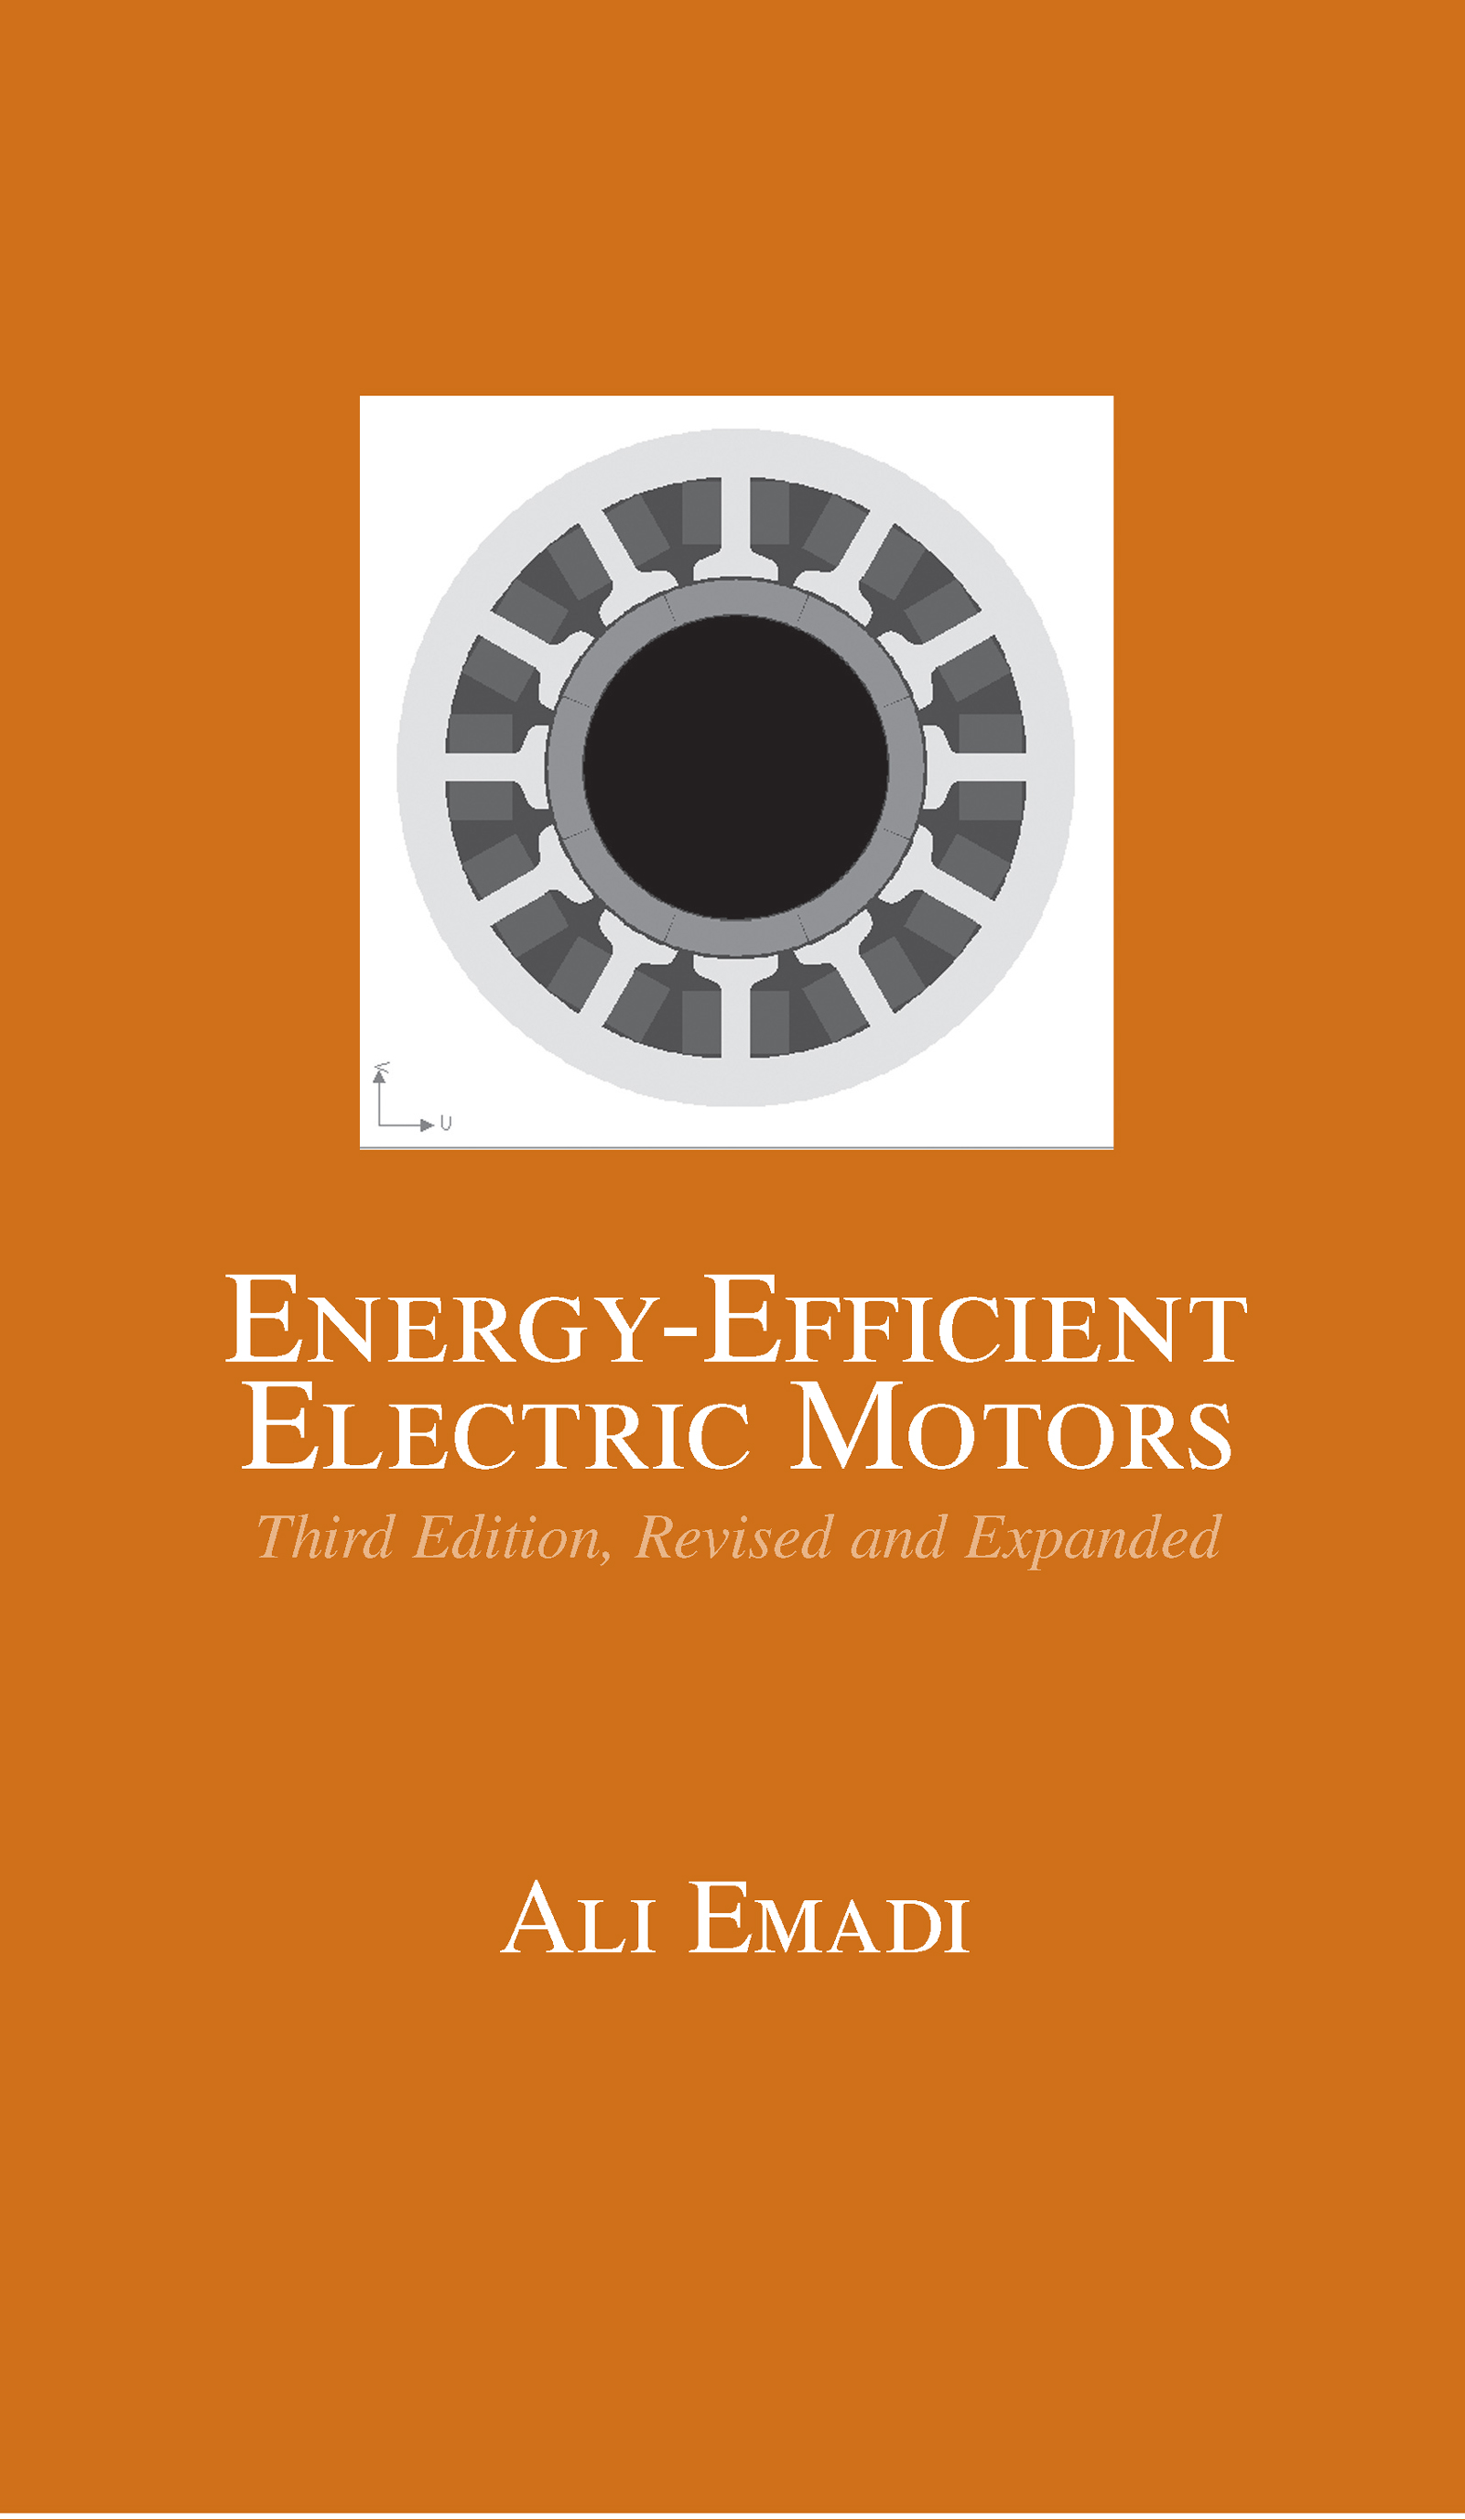 Energy-Efficient Electric Motors, Revised and Expanded